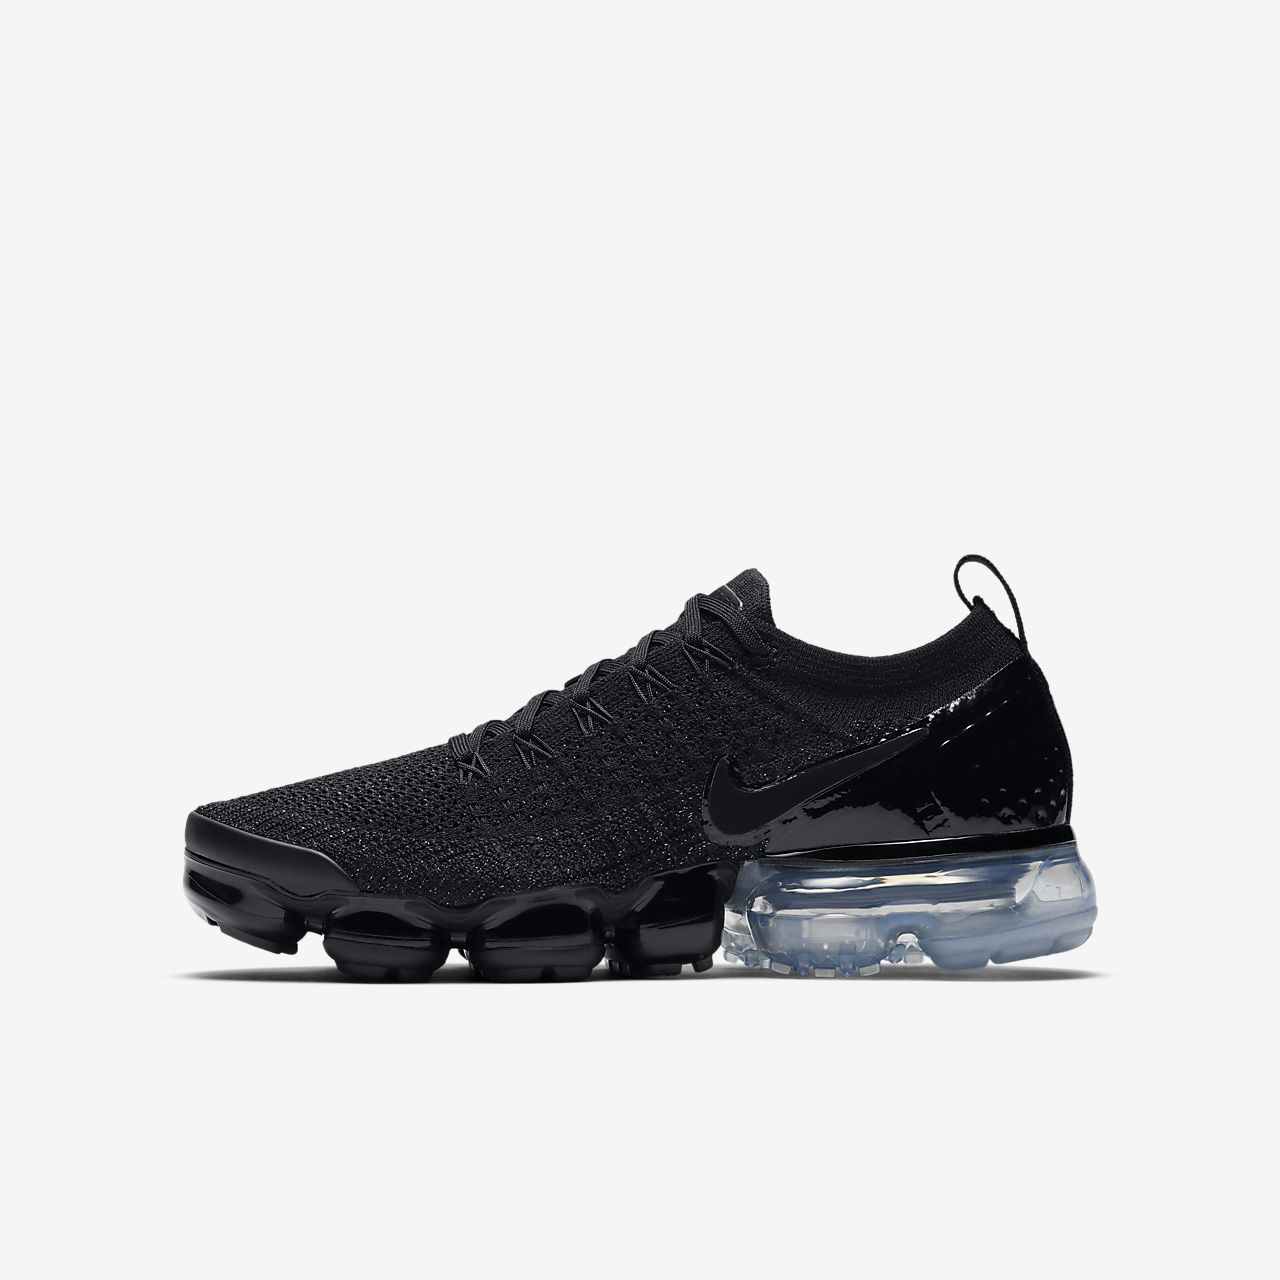 outlet store 1eb4f d186a sale nike air vapormax flyknit triple schwarz photo 1 8 ...